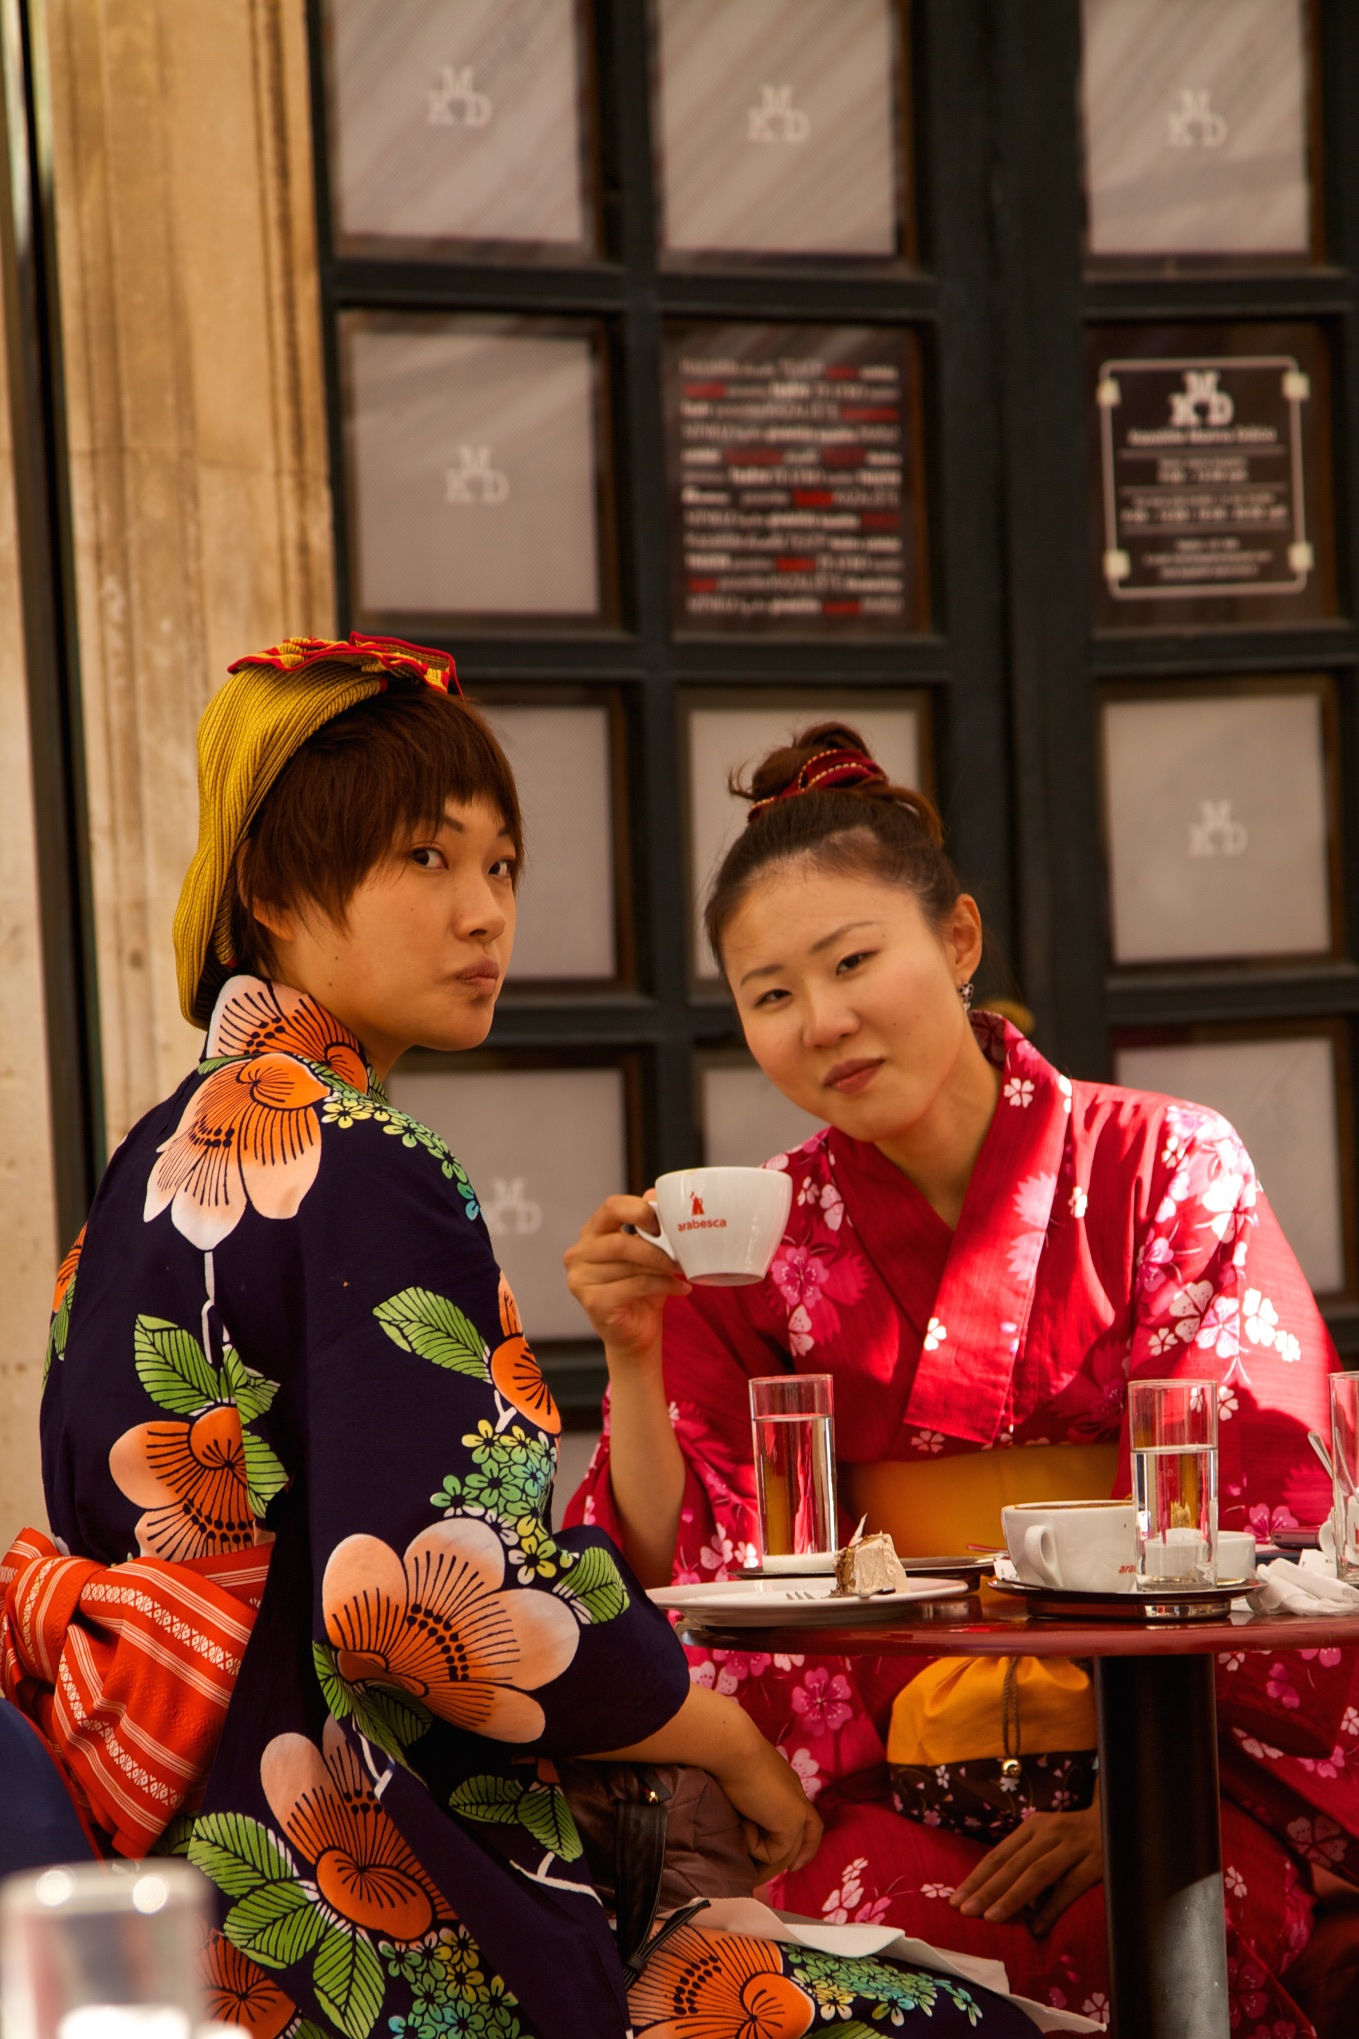 European tea ceremony for Japanese visitors. Dubrovnik, Croatia